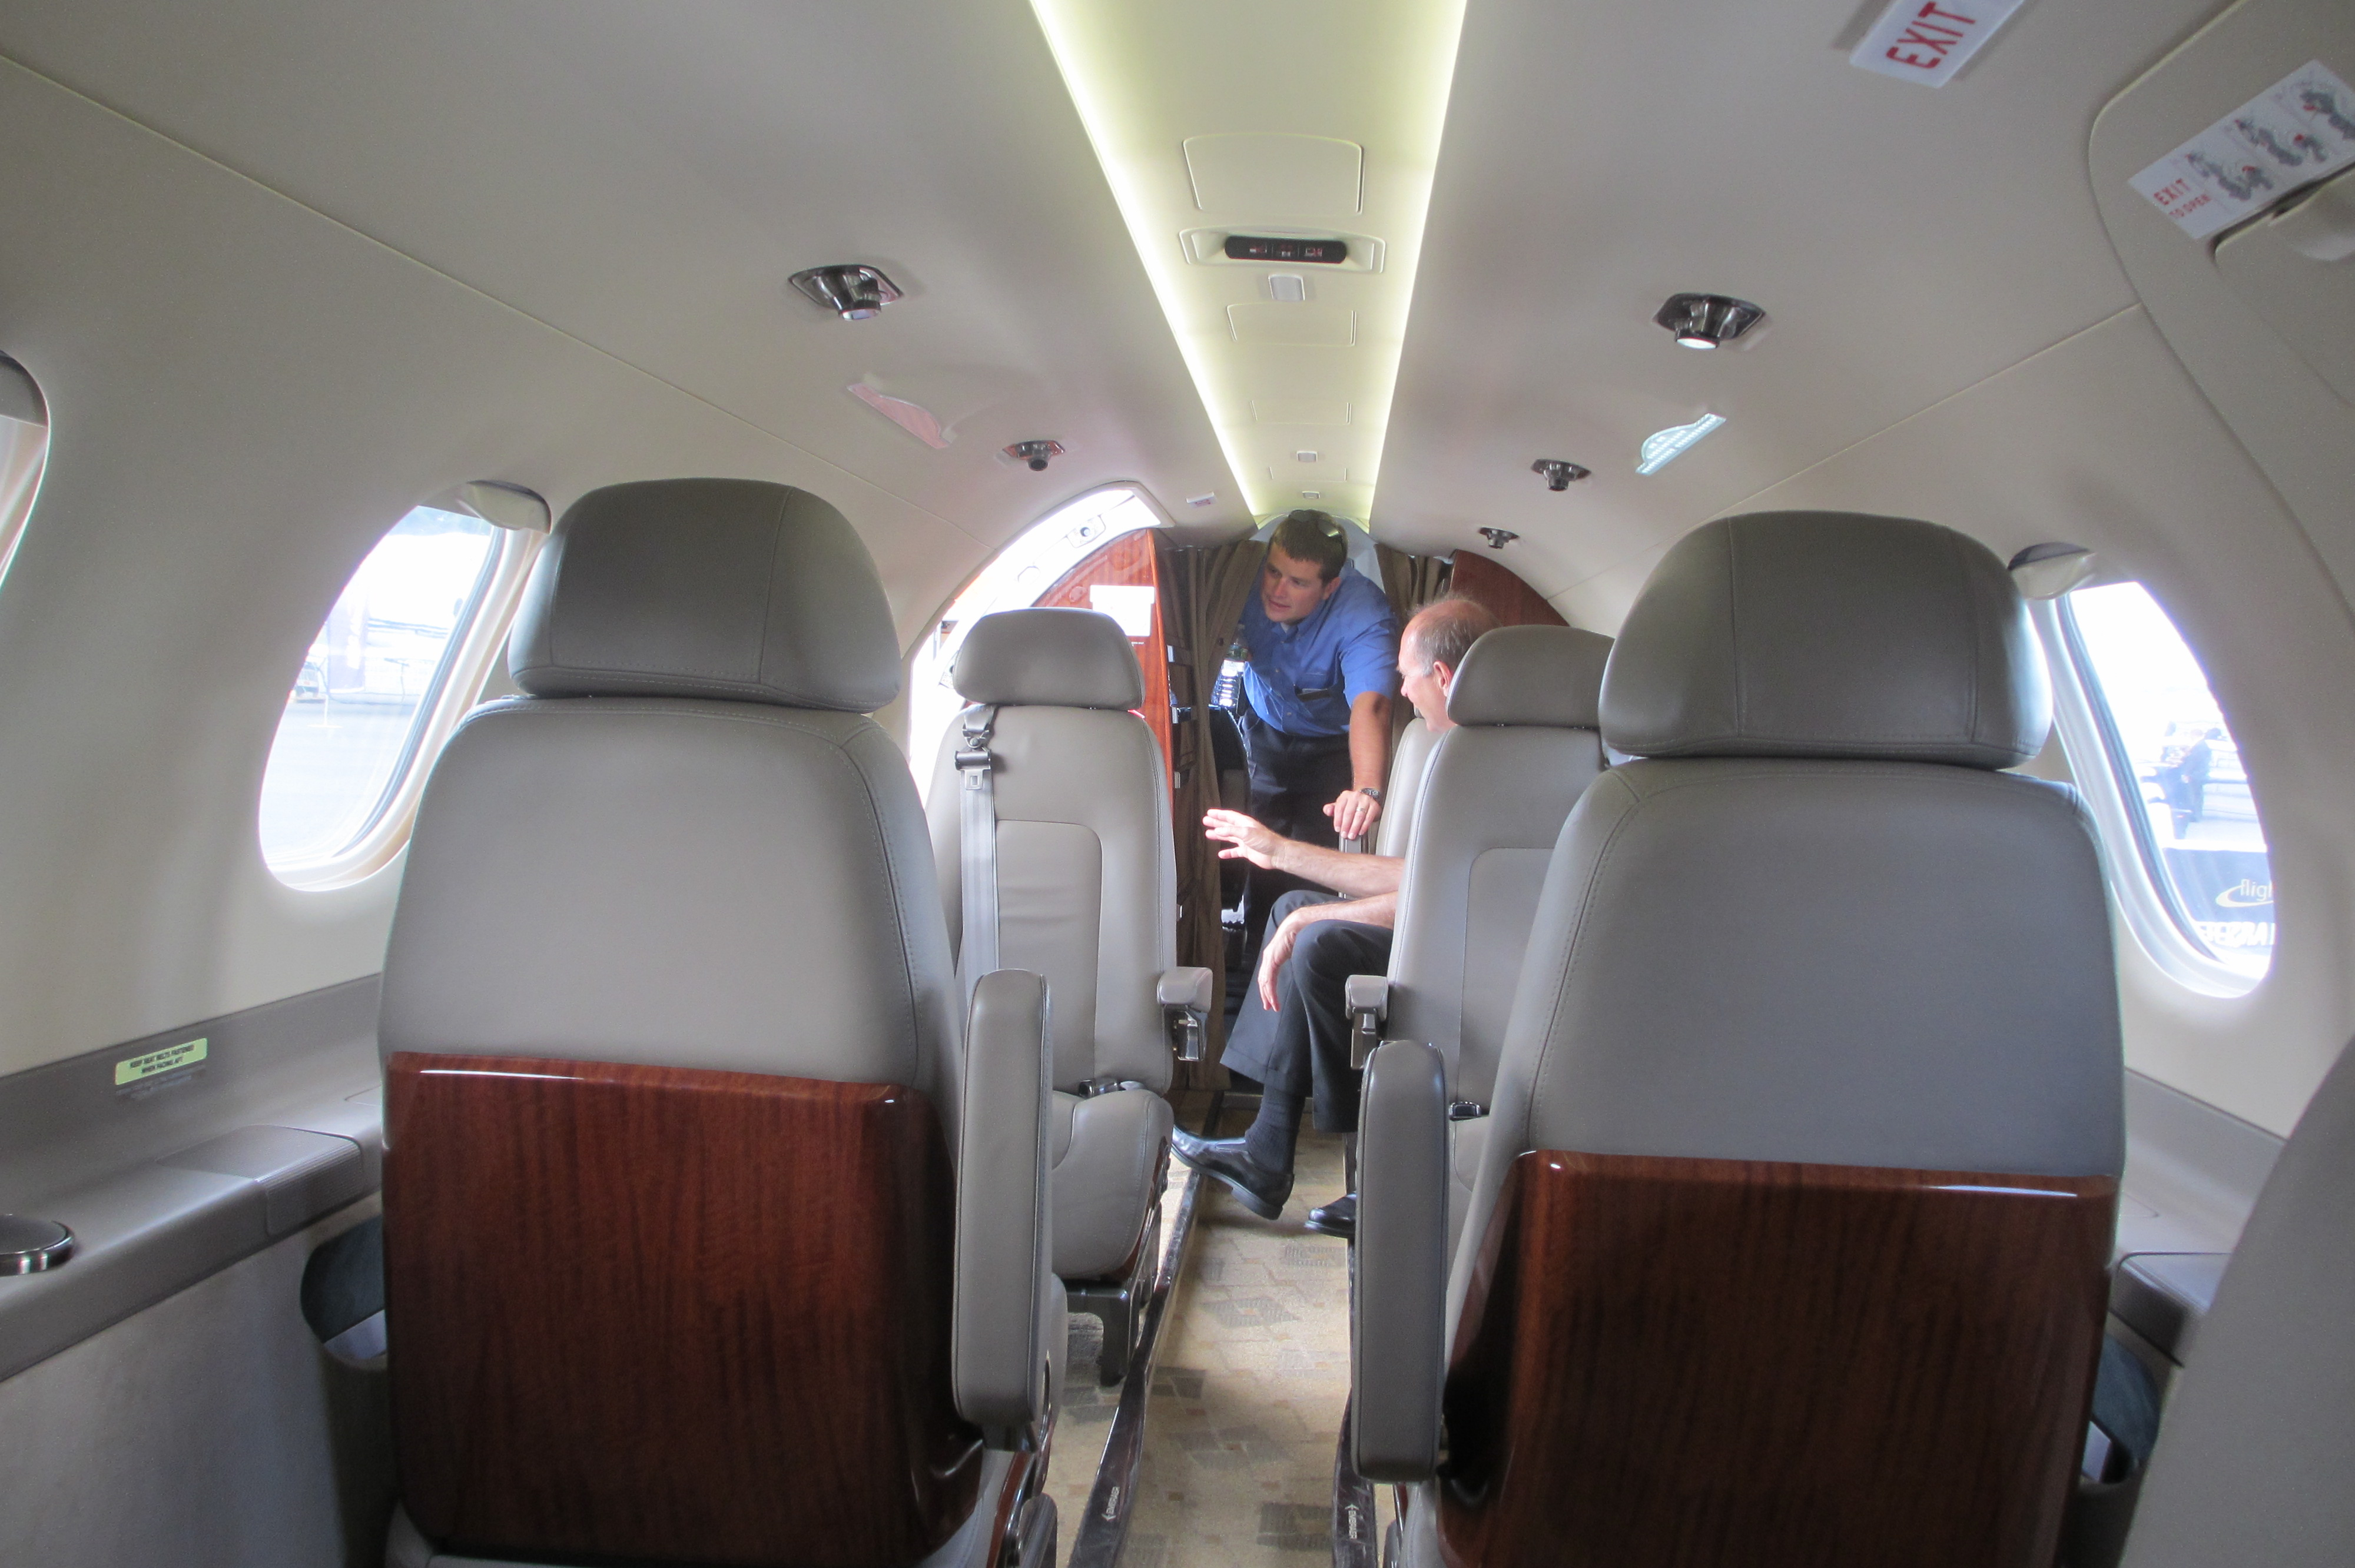 File:Embraer EMB 505 Phenom 300 Interior With Passengers